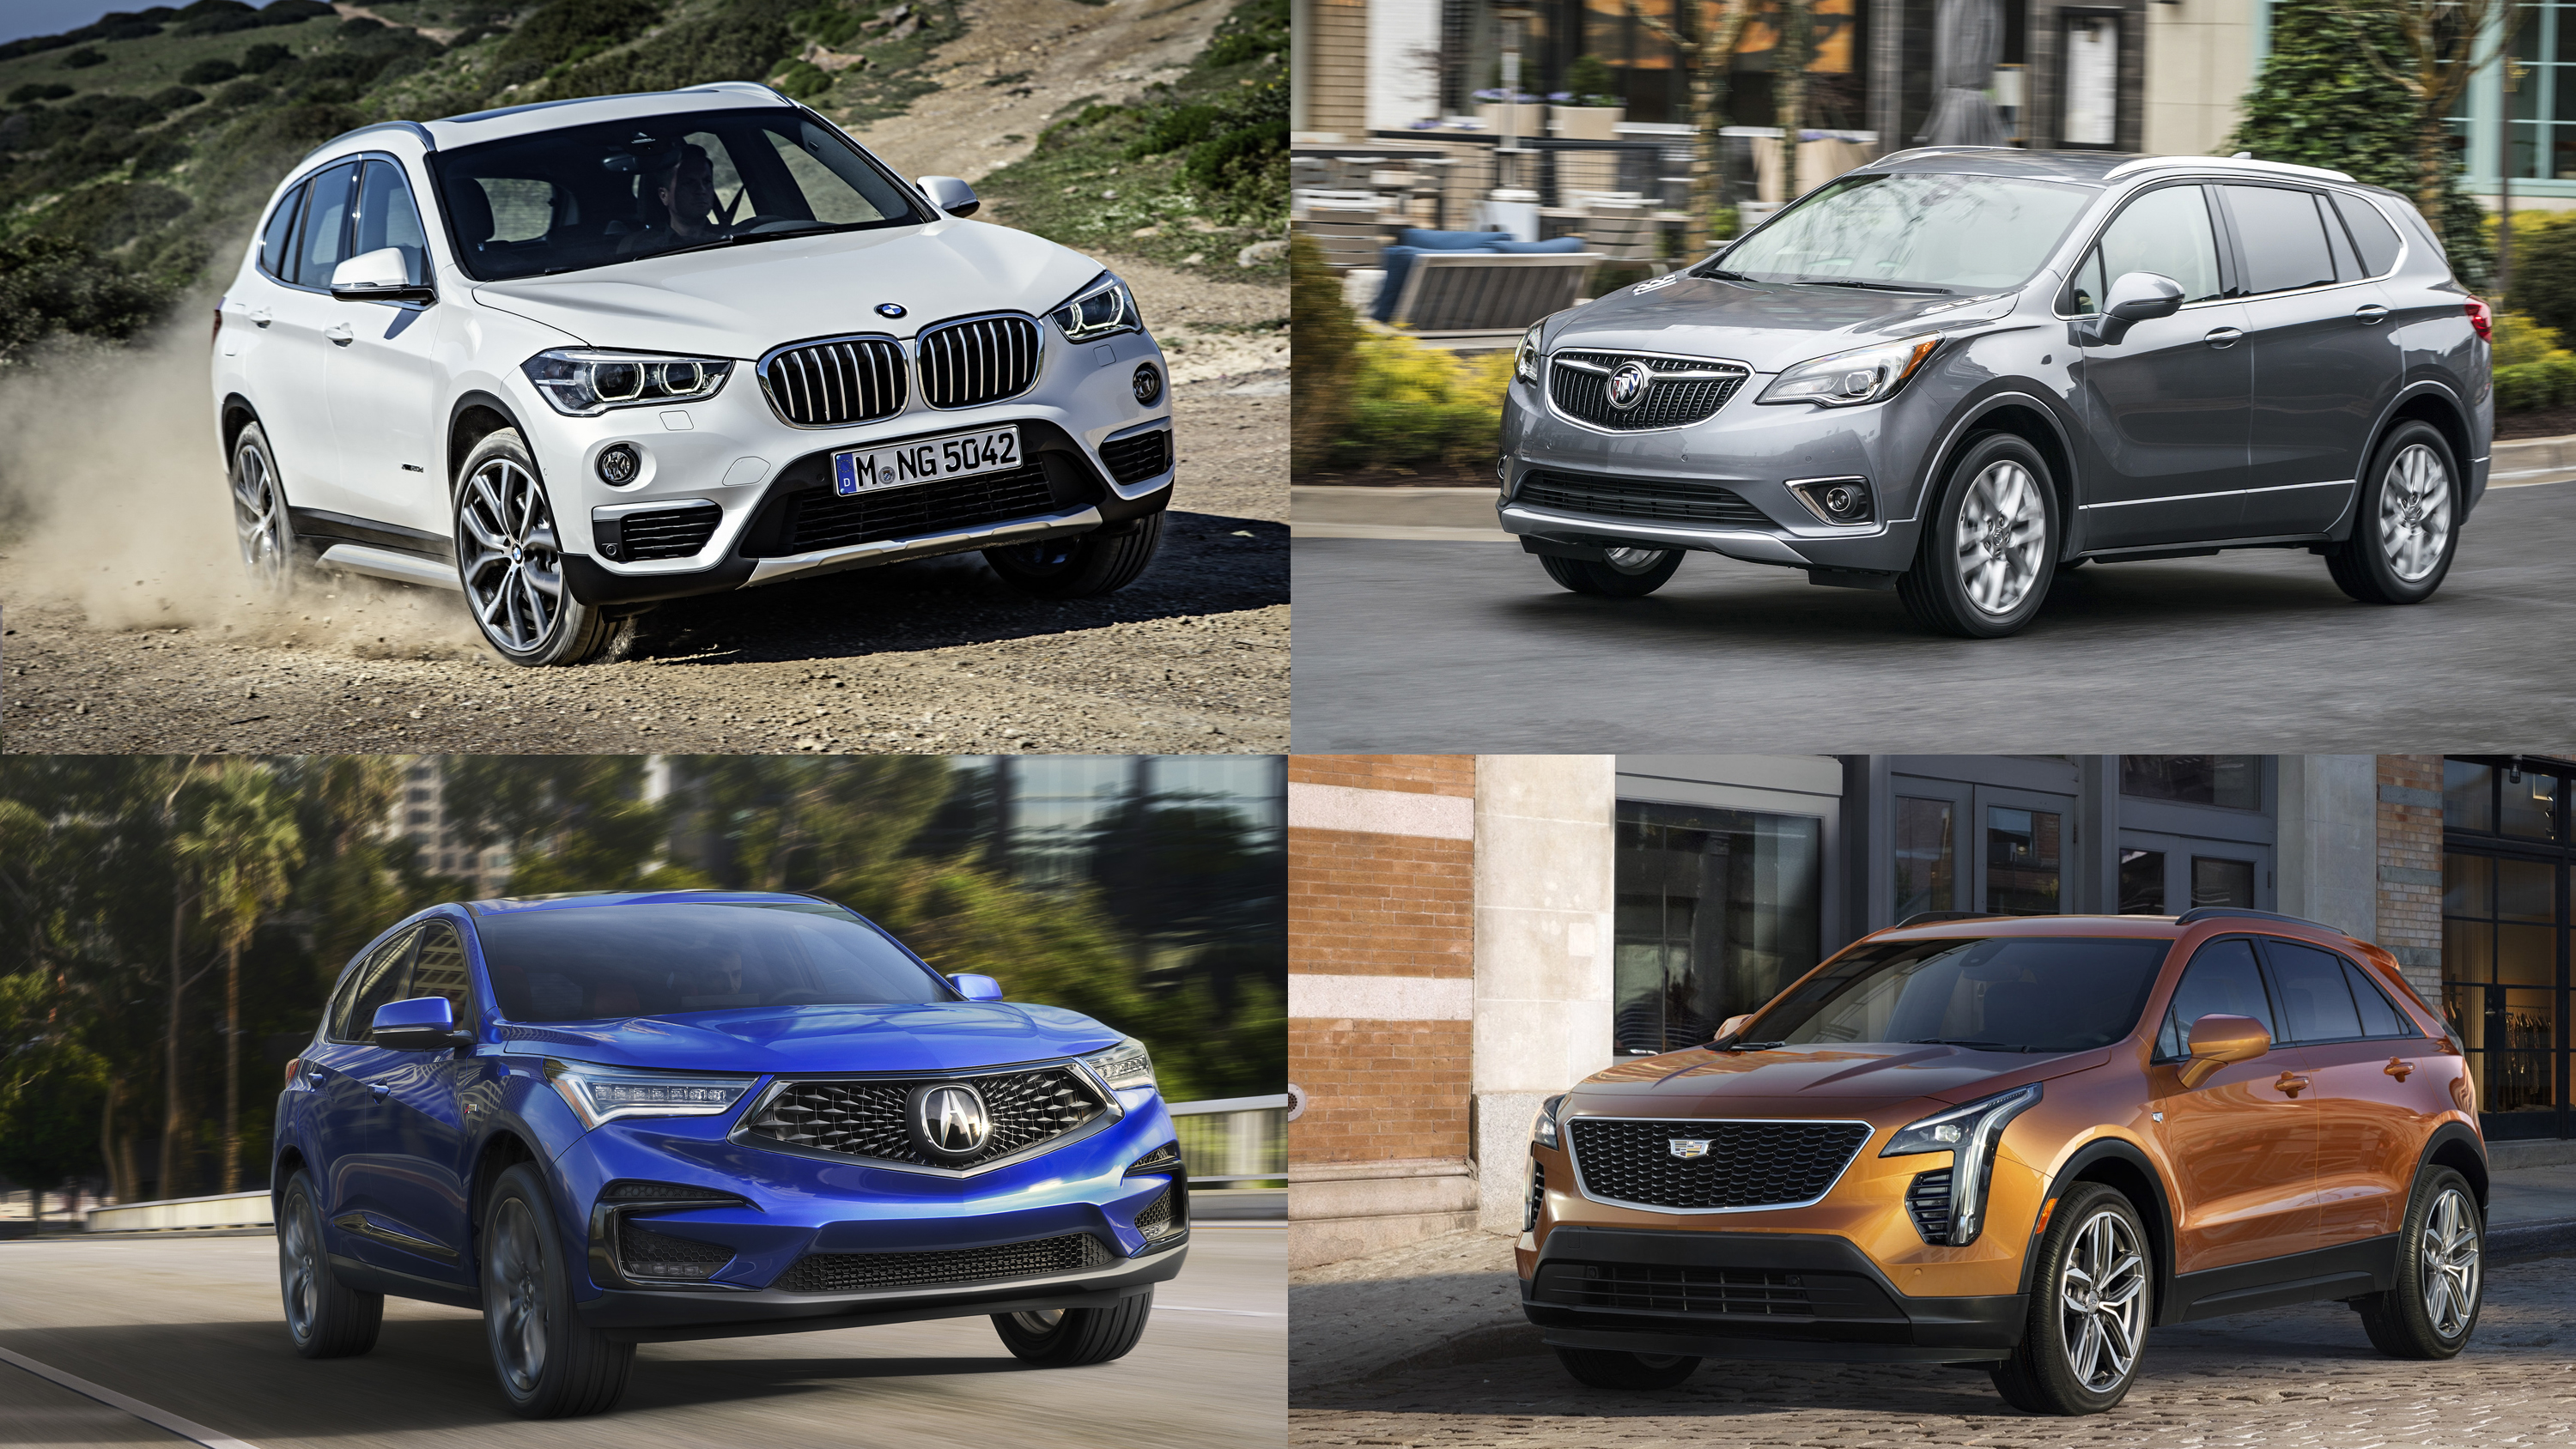 Luxury Suv: The Best 2019 Luxury SUVs Under $40,000